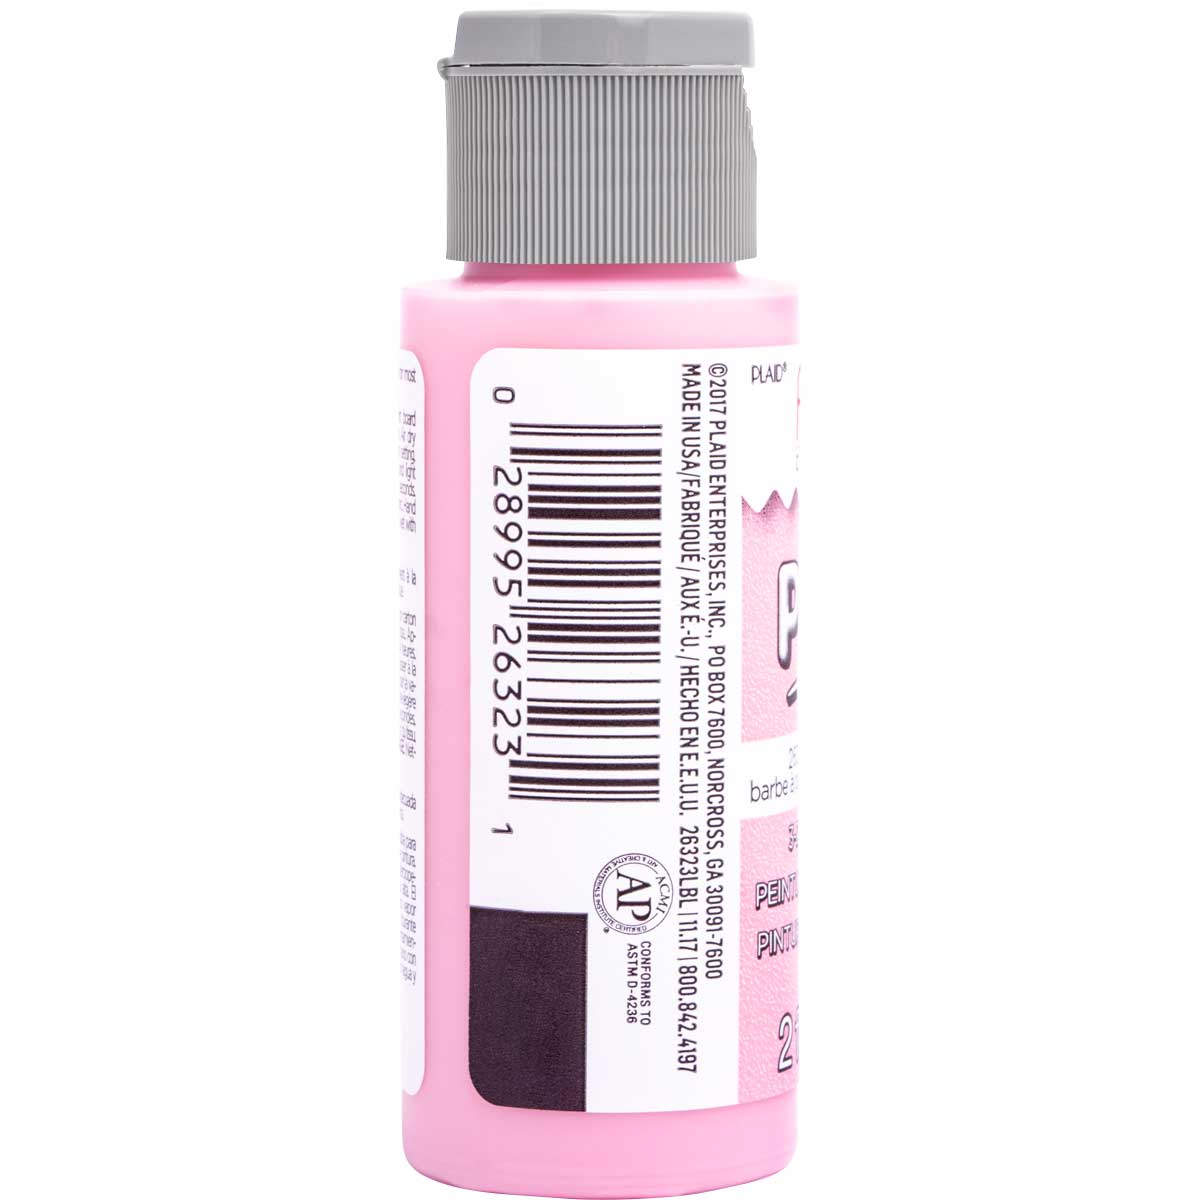 Fabric Creations™ Plush™ 3-D Fabric Paints - Cotton Candy, 2 oz. - 26323